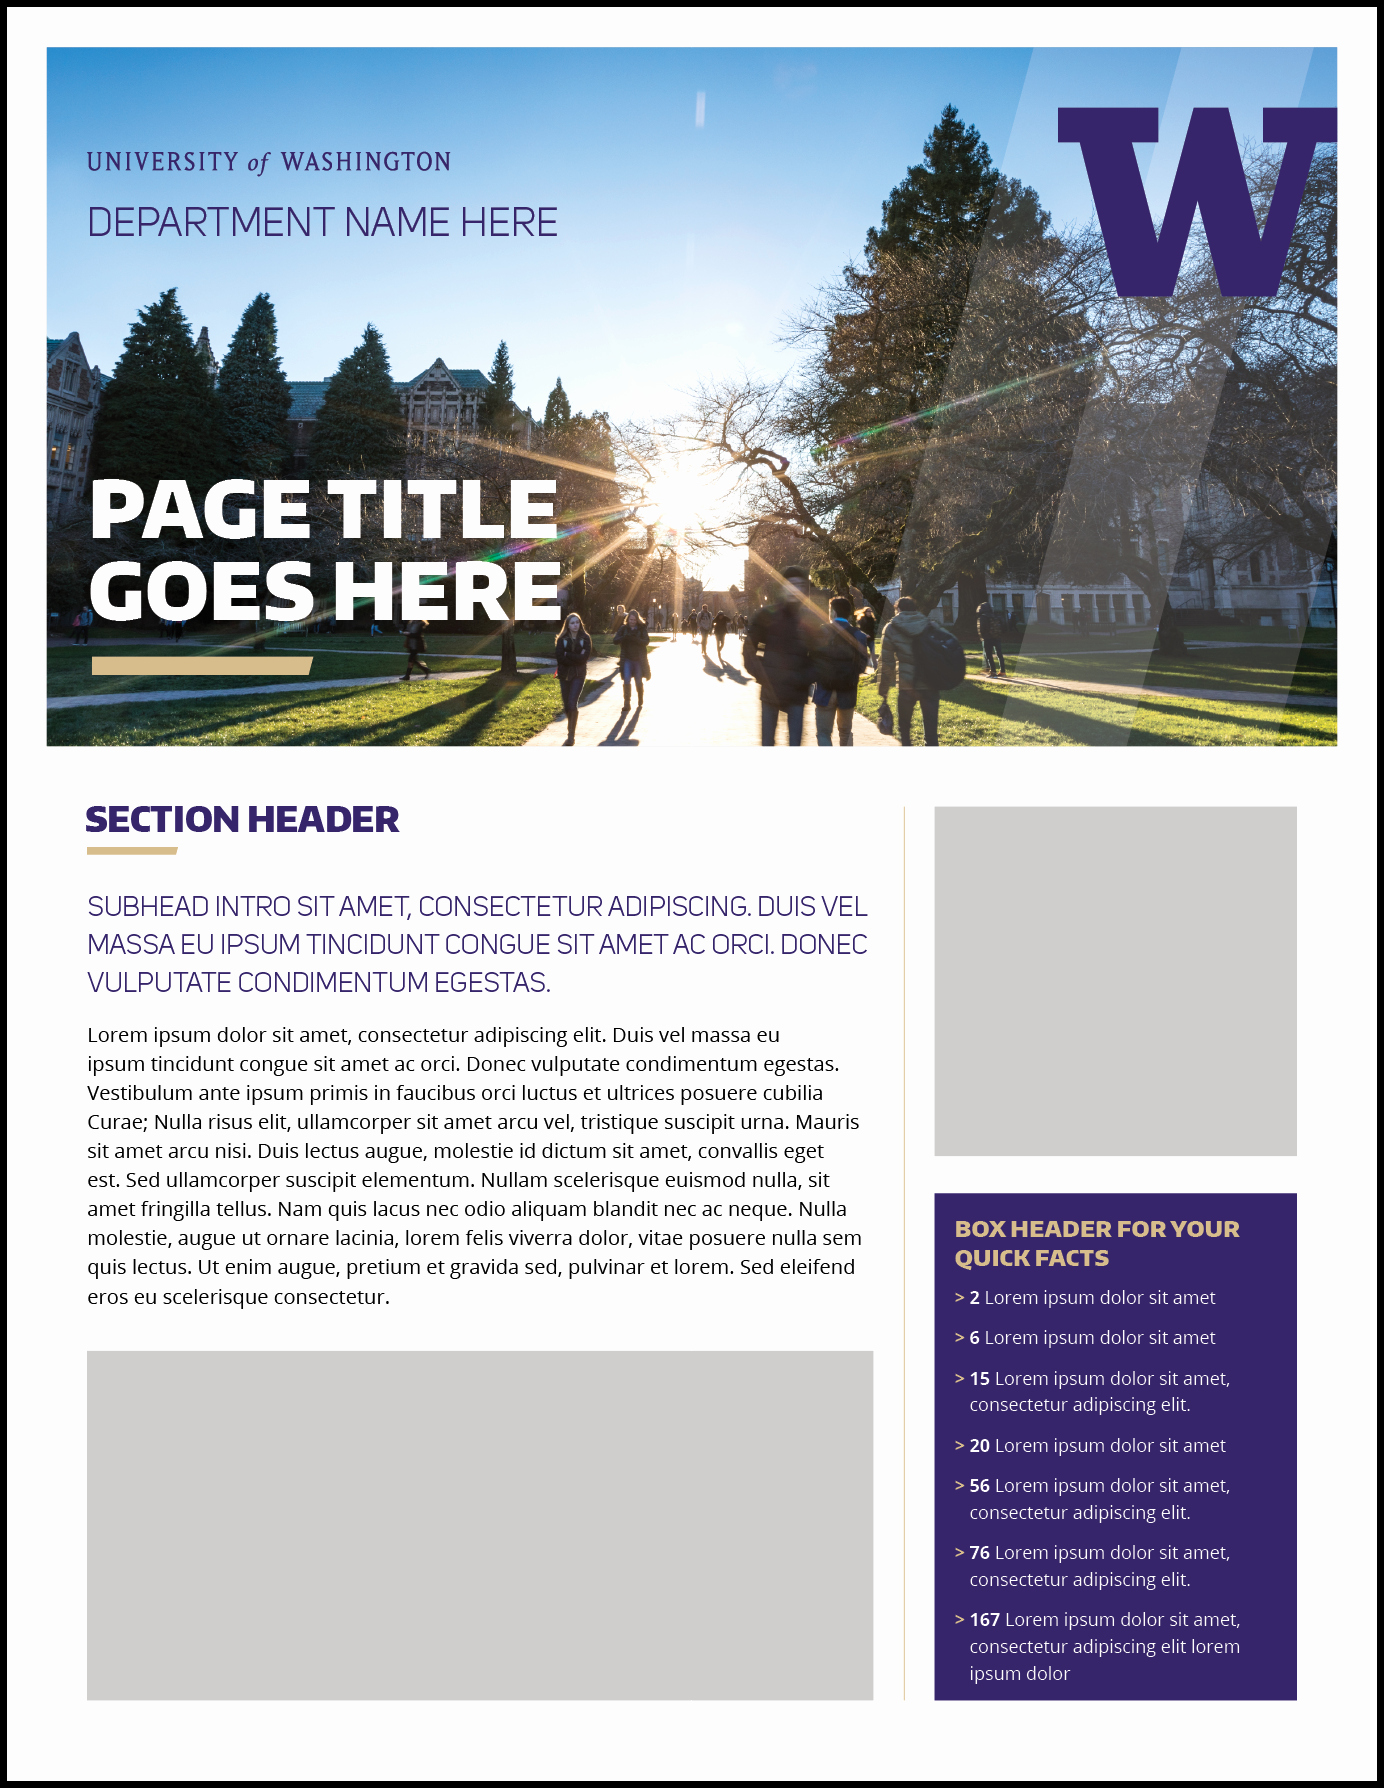 One Page Fact Sheet Template Luxury Fact Sheet